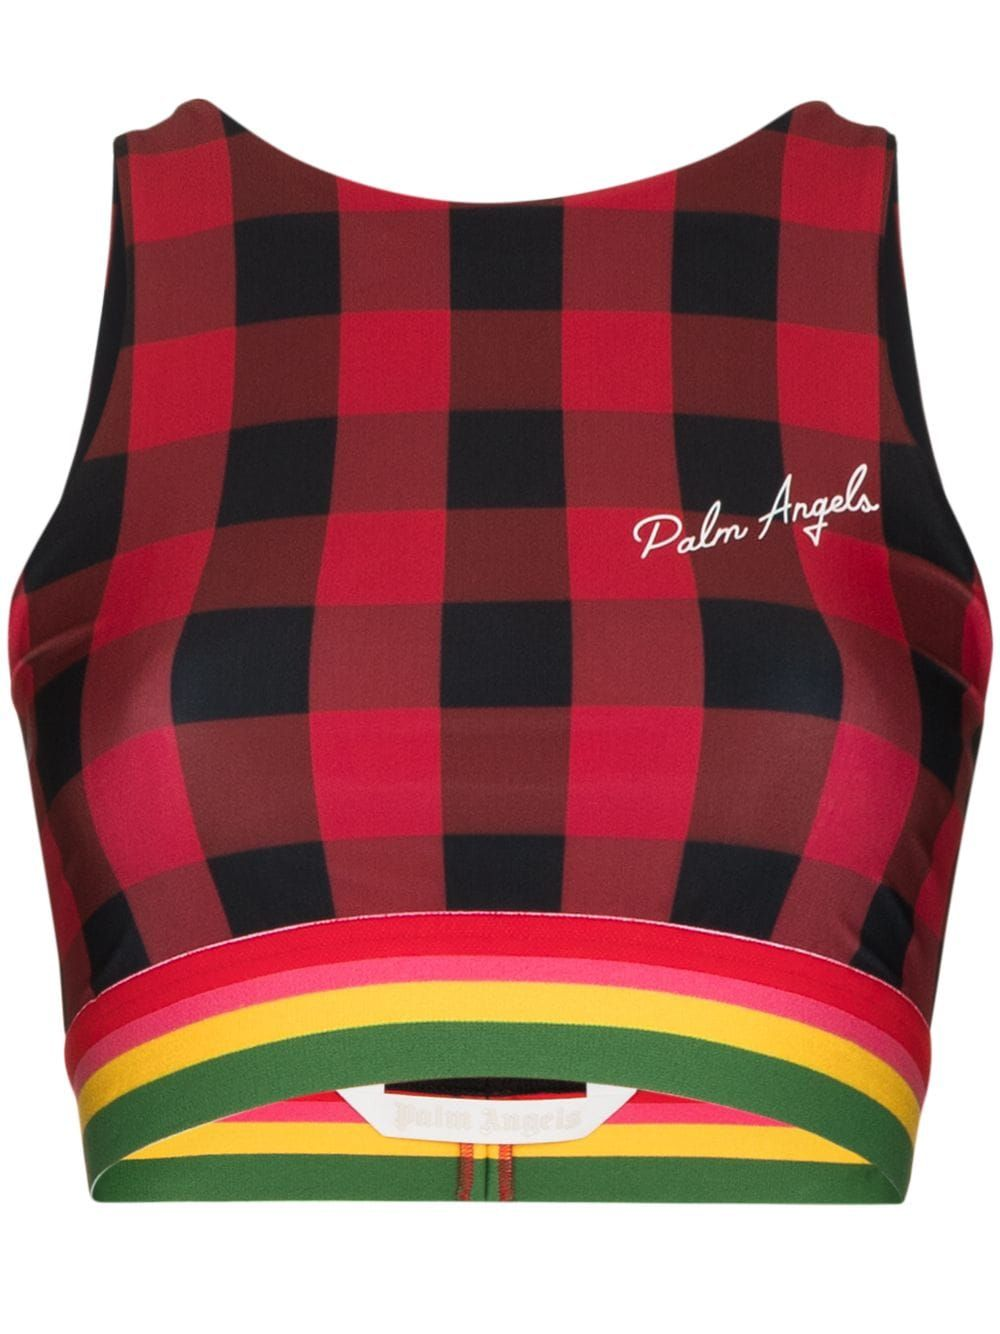 Palm Angels PALM ANGELS WOMEN'S RED POLYESTER TOP